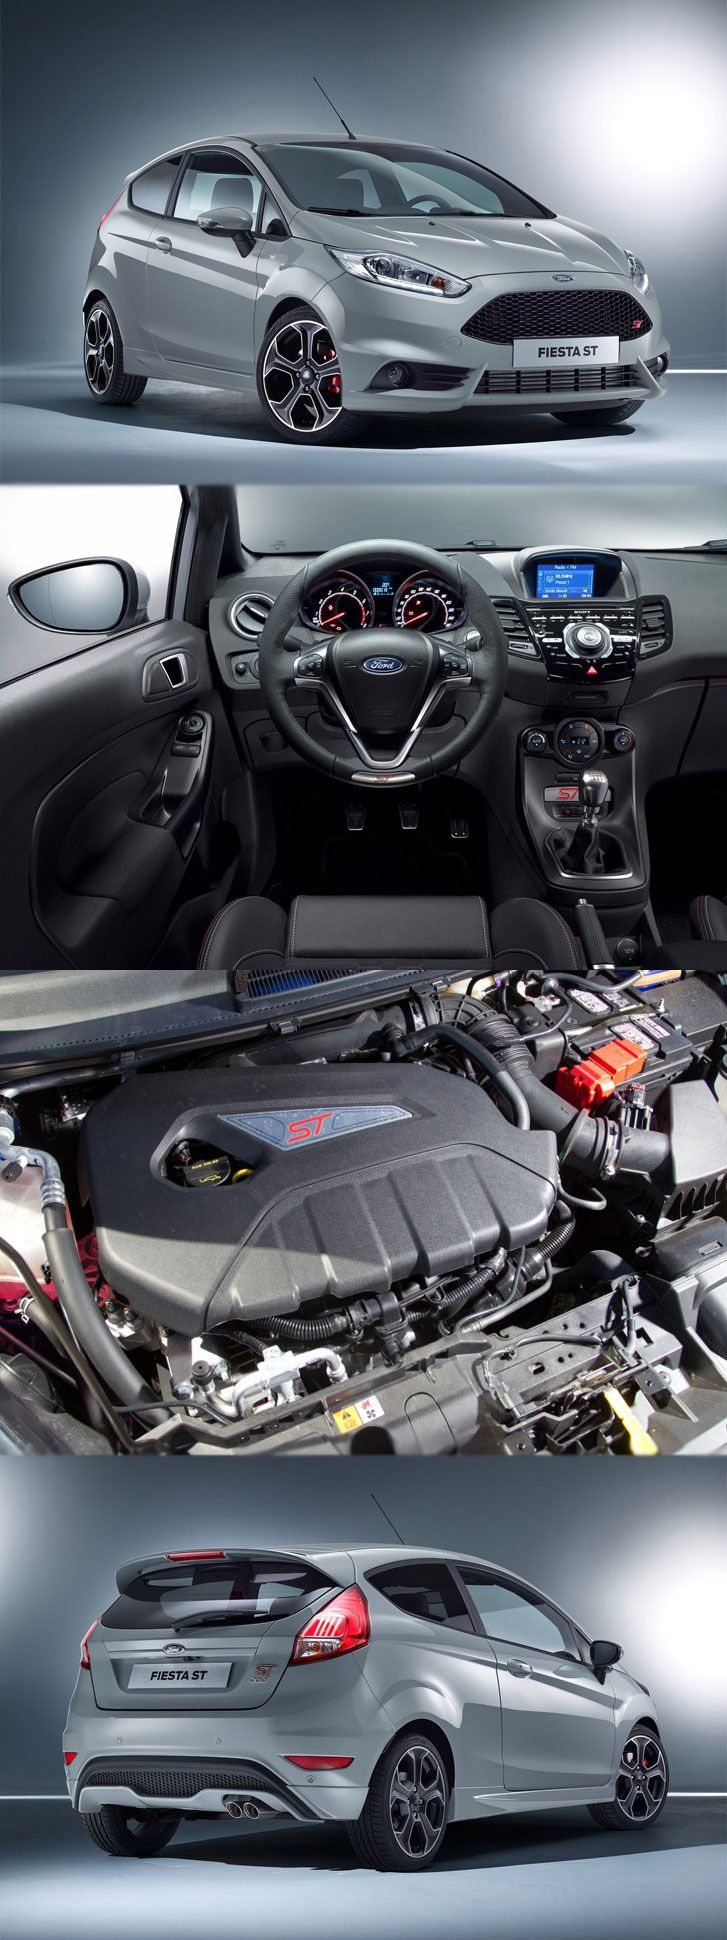 Ford fiesta has many tricks to do with petrol and diesel engines get more details at